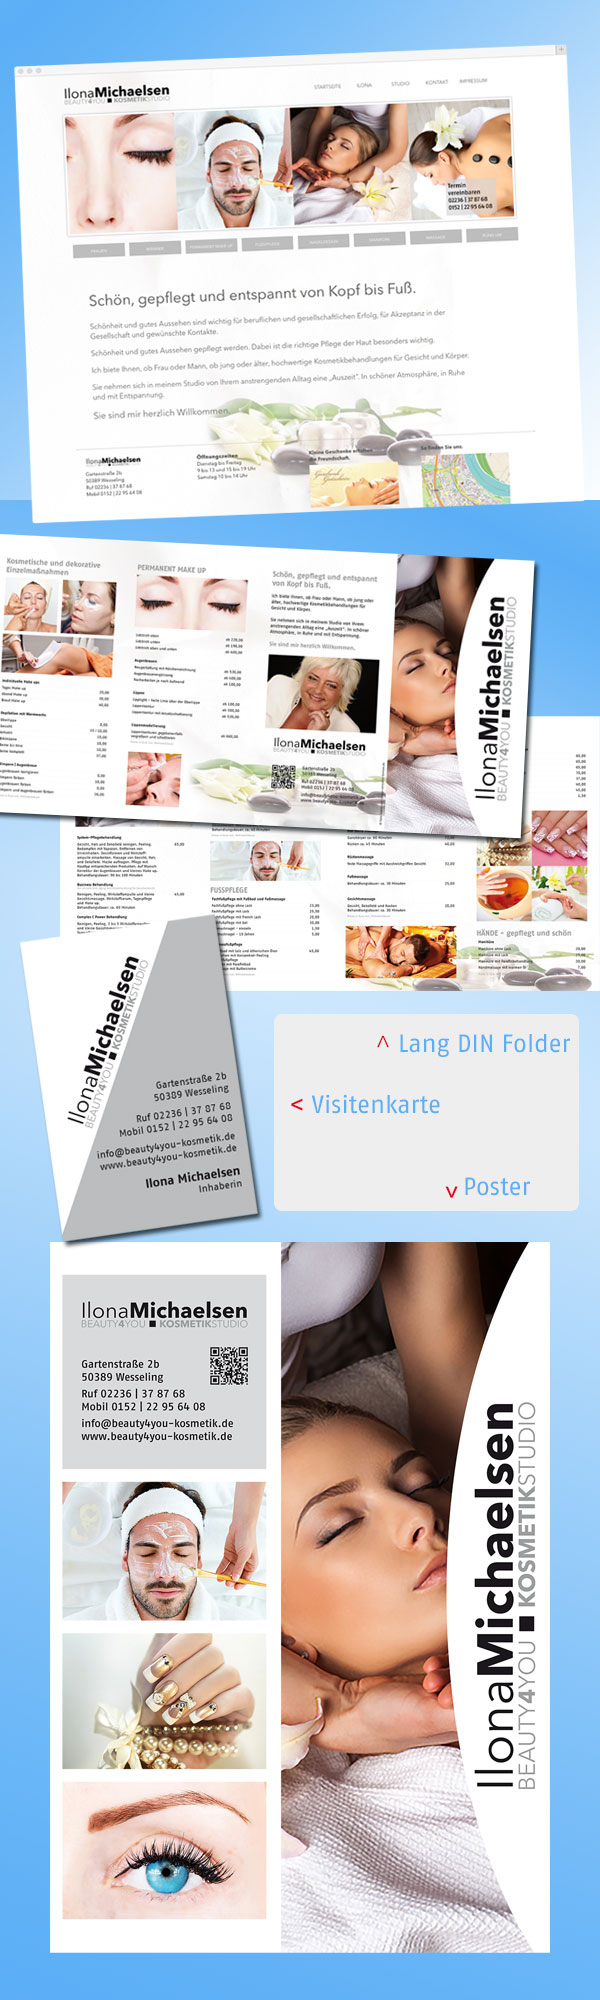 Corporate Design Web und Print